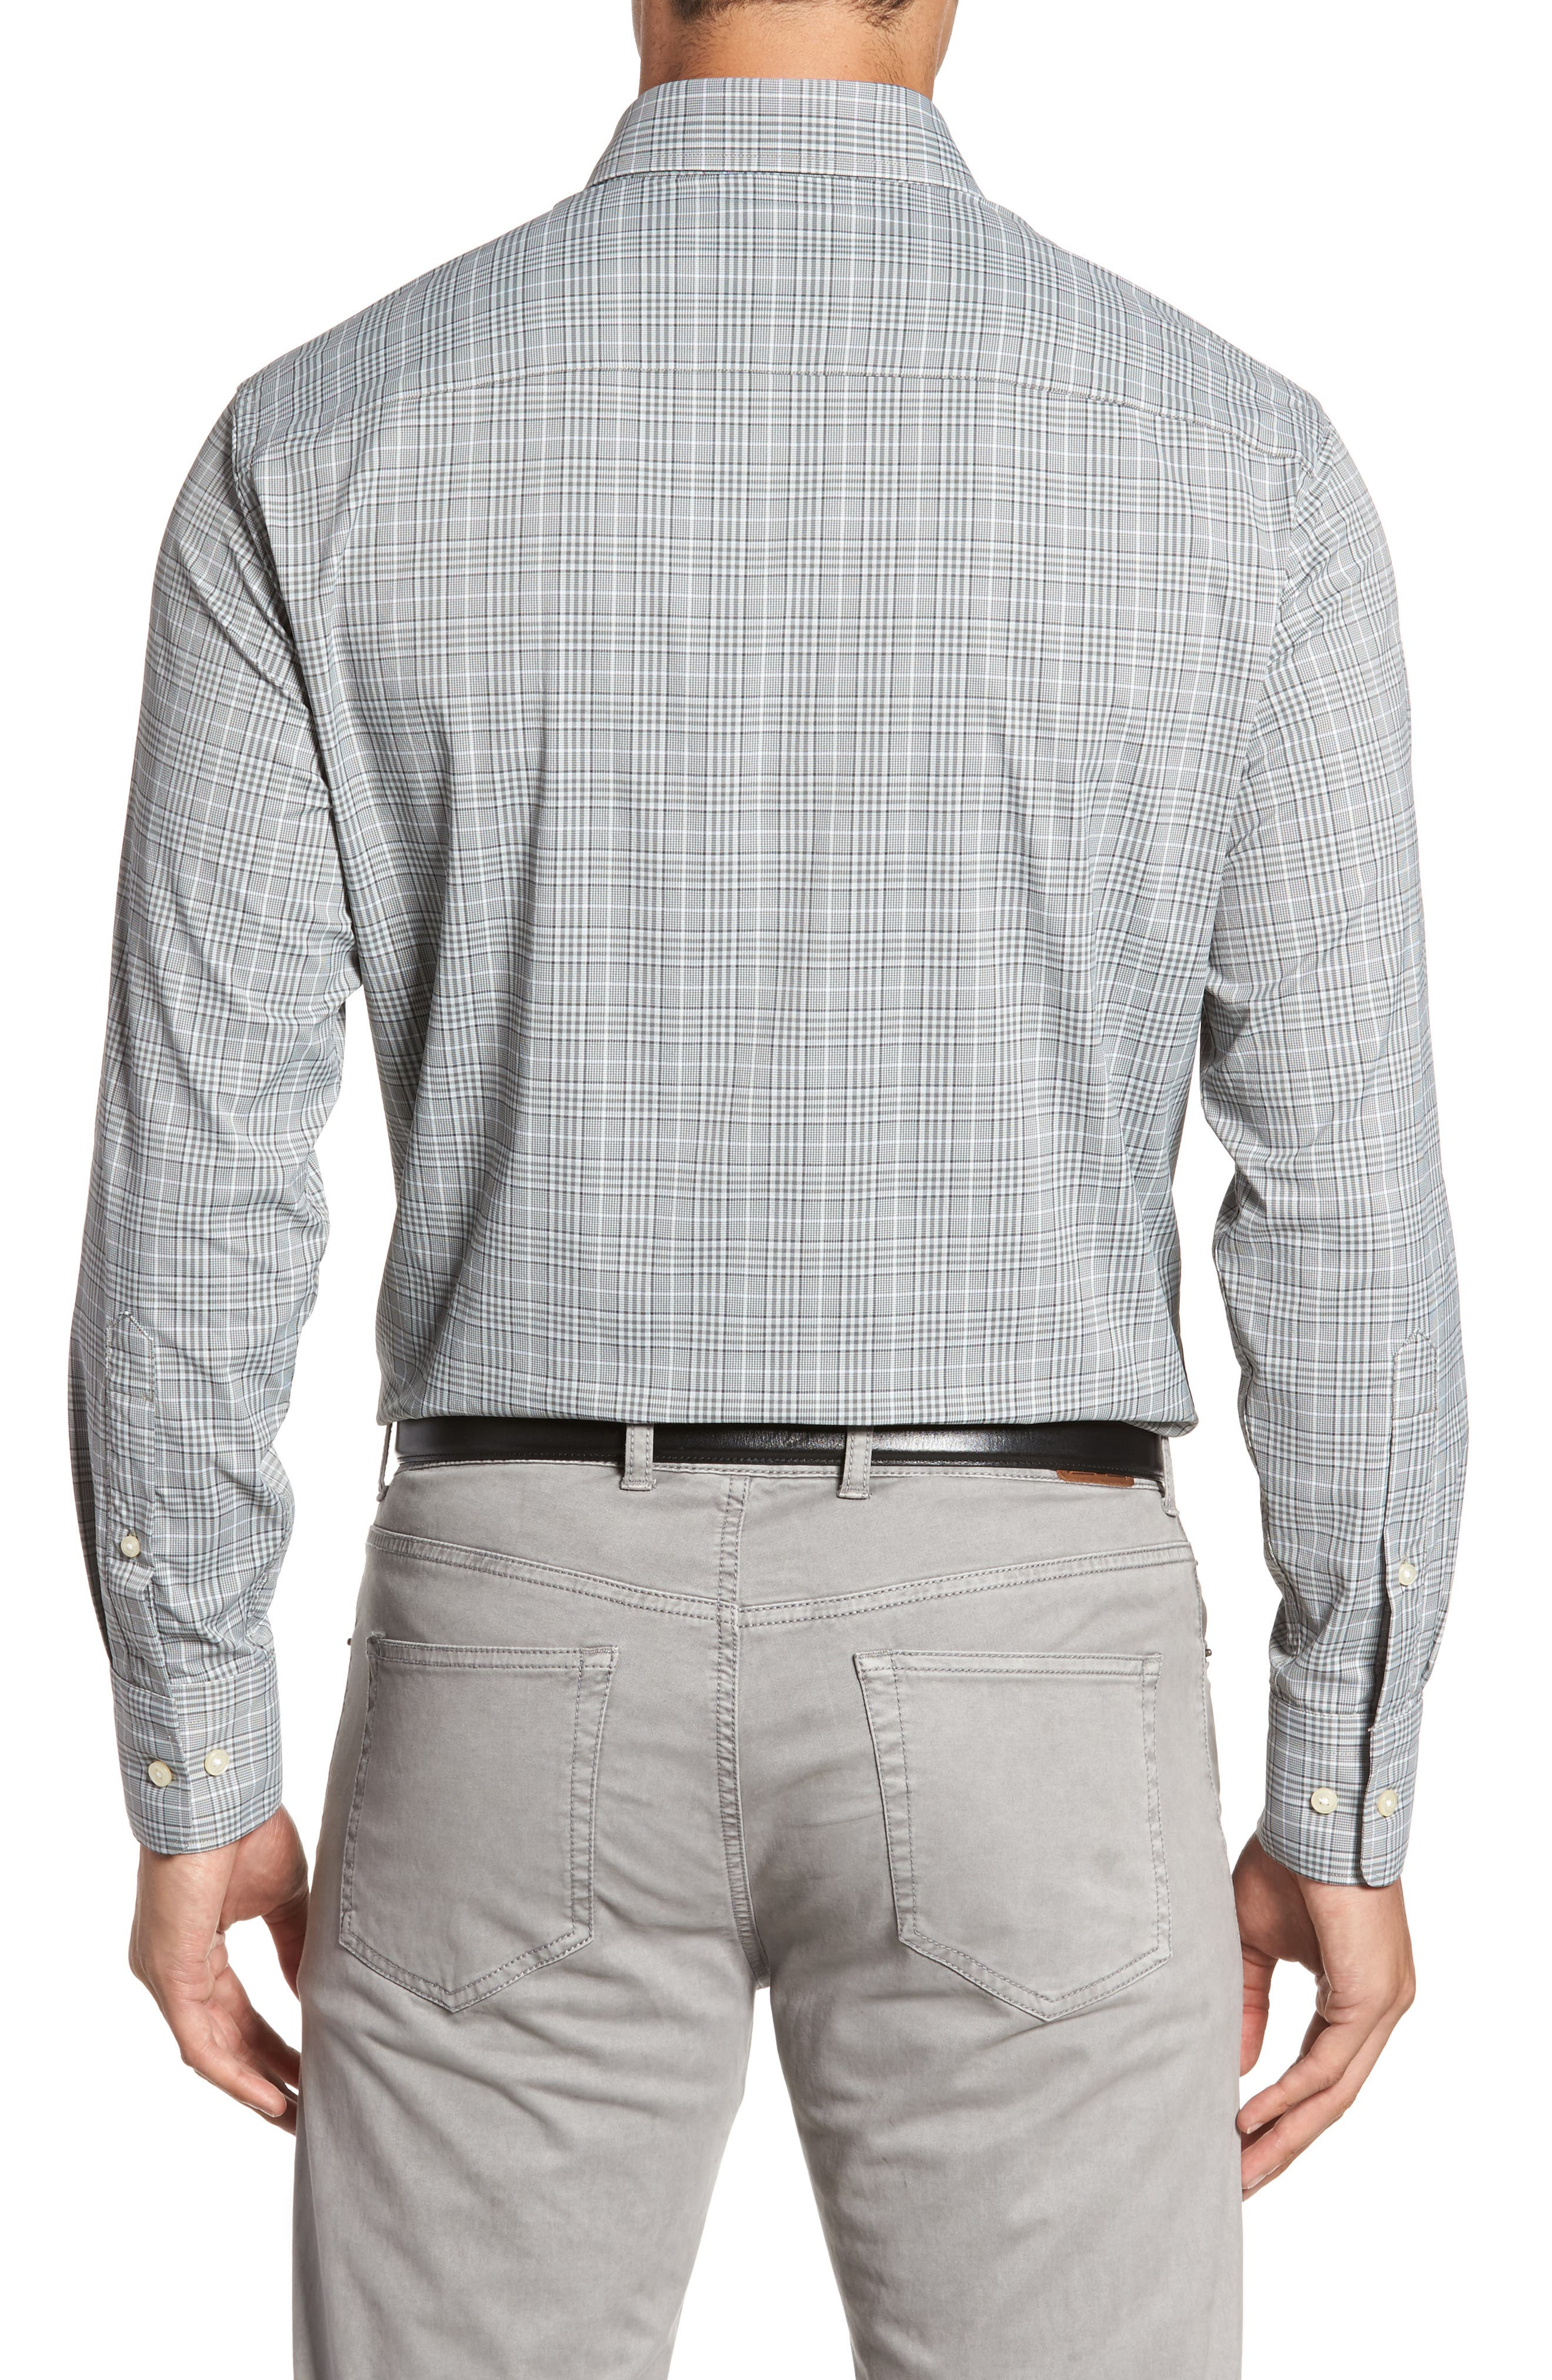 Vedder Gingham Regular Fit Performance Sport Shirt,                             Alternate thumbnail 2, color,                             025